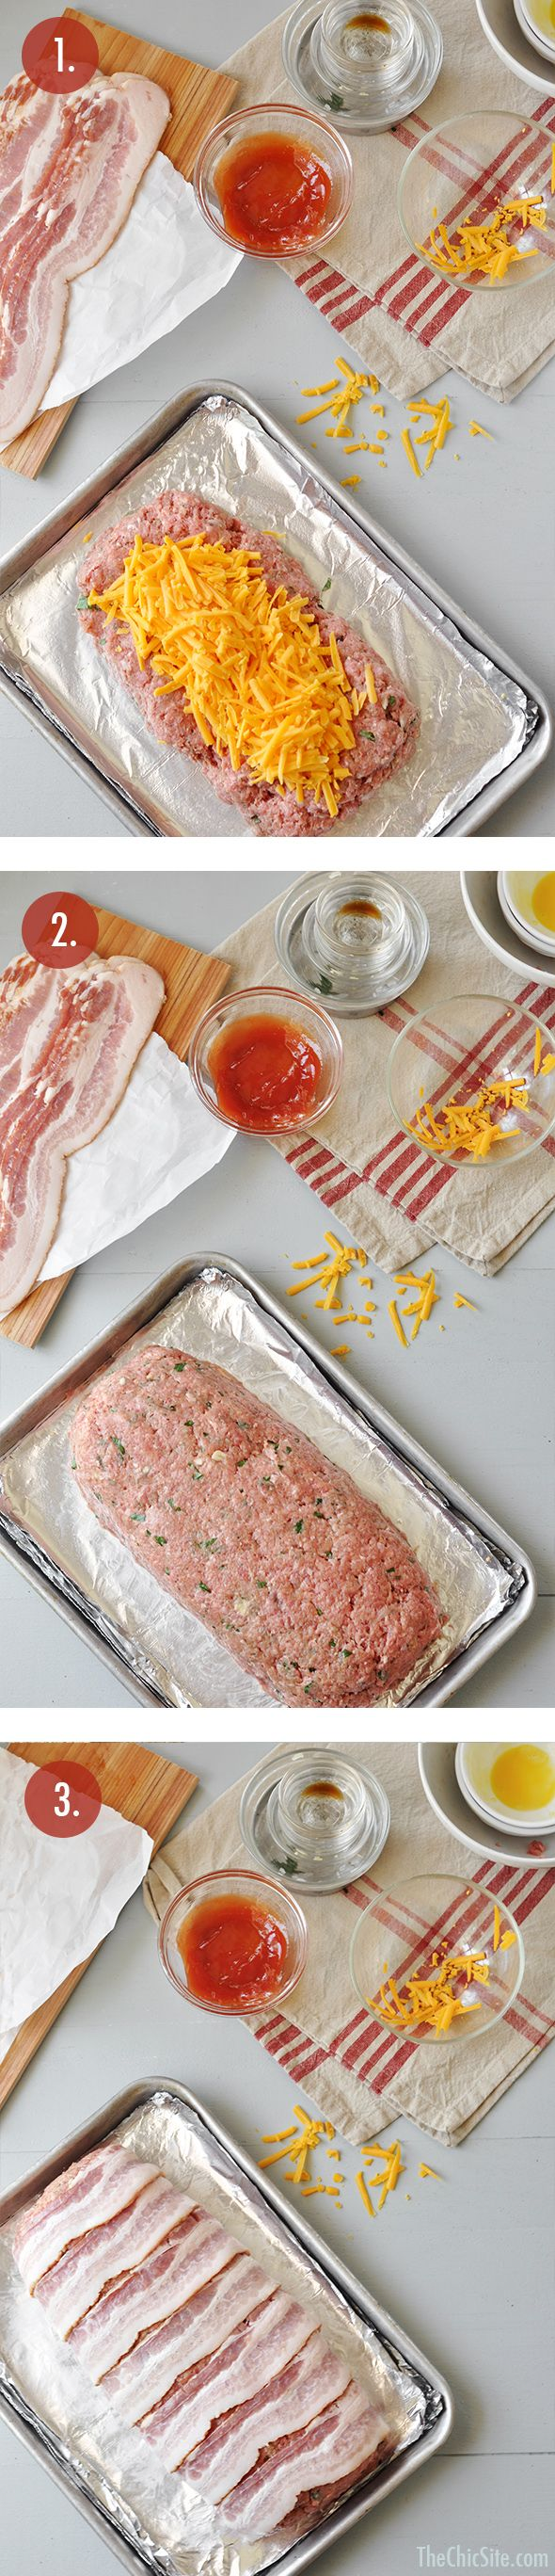 Bacon Cheeseburger Meatloaf Step by Step Dinner Recipe